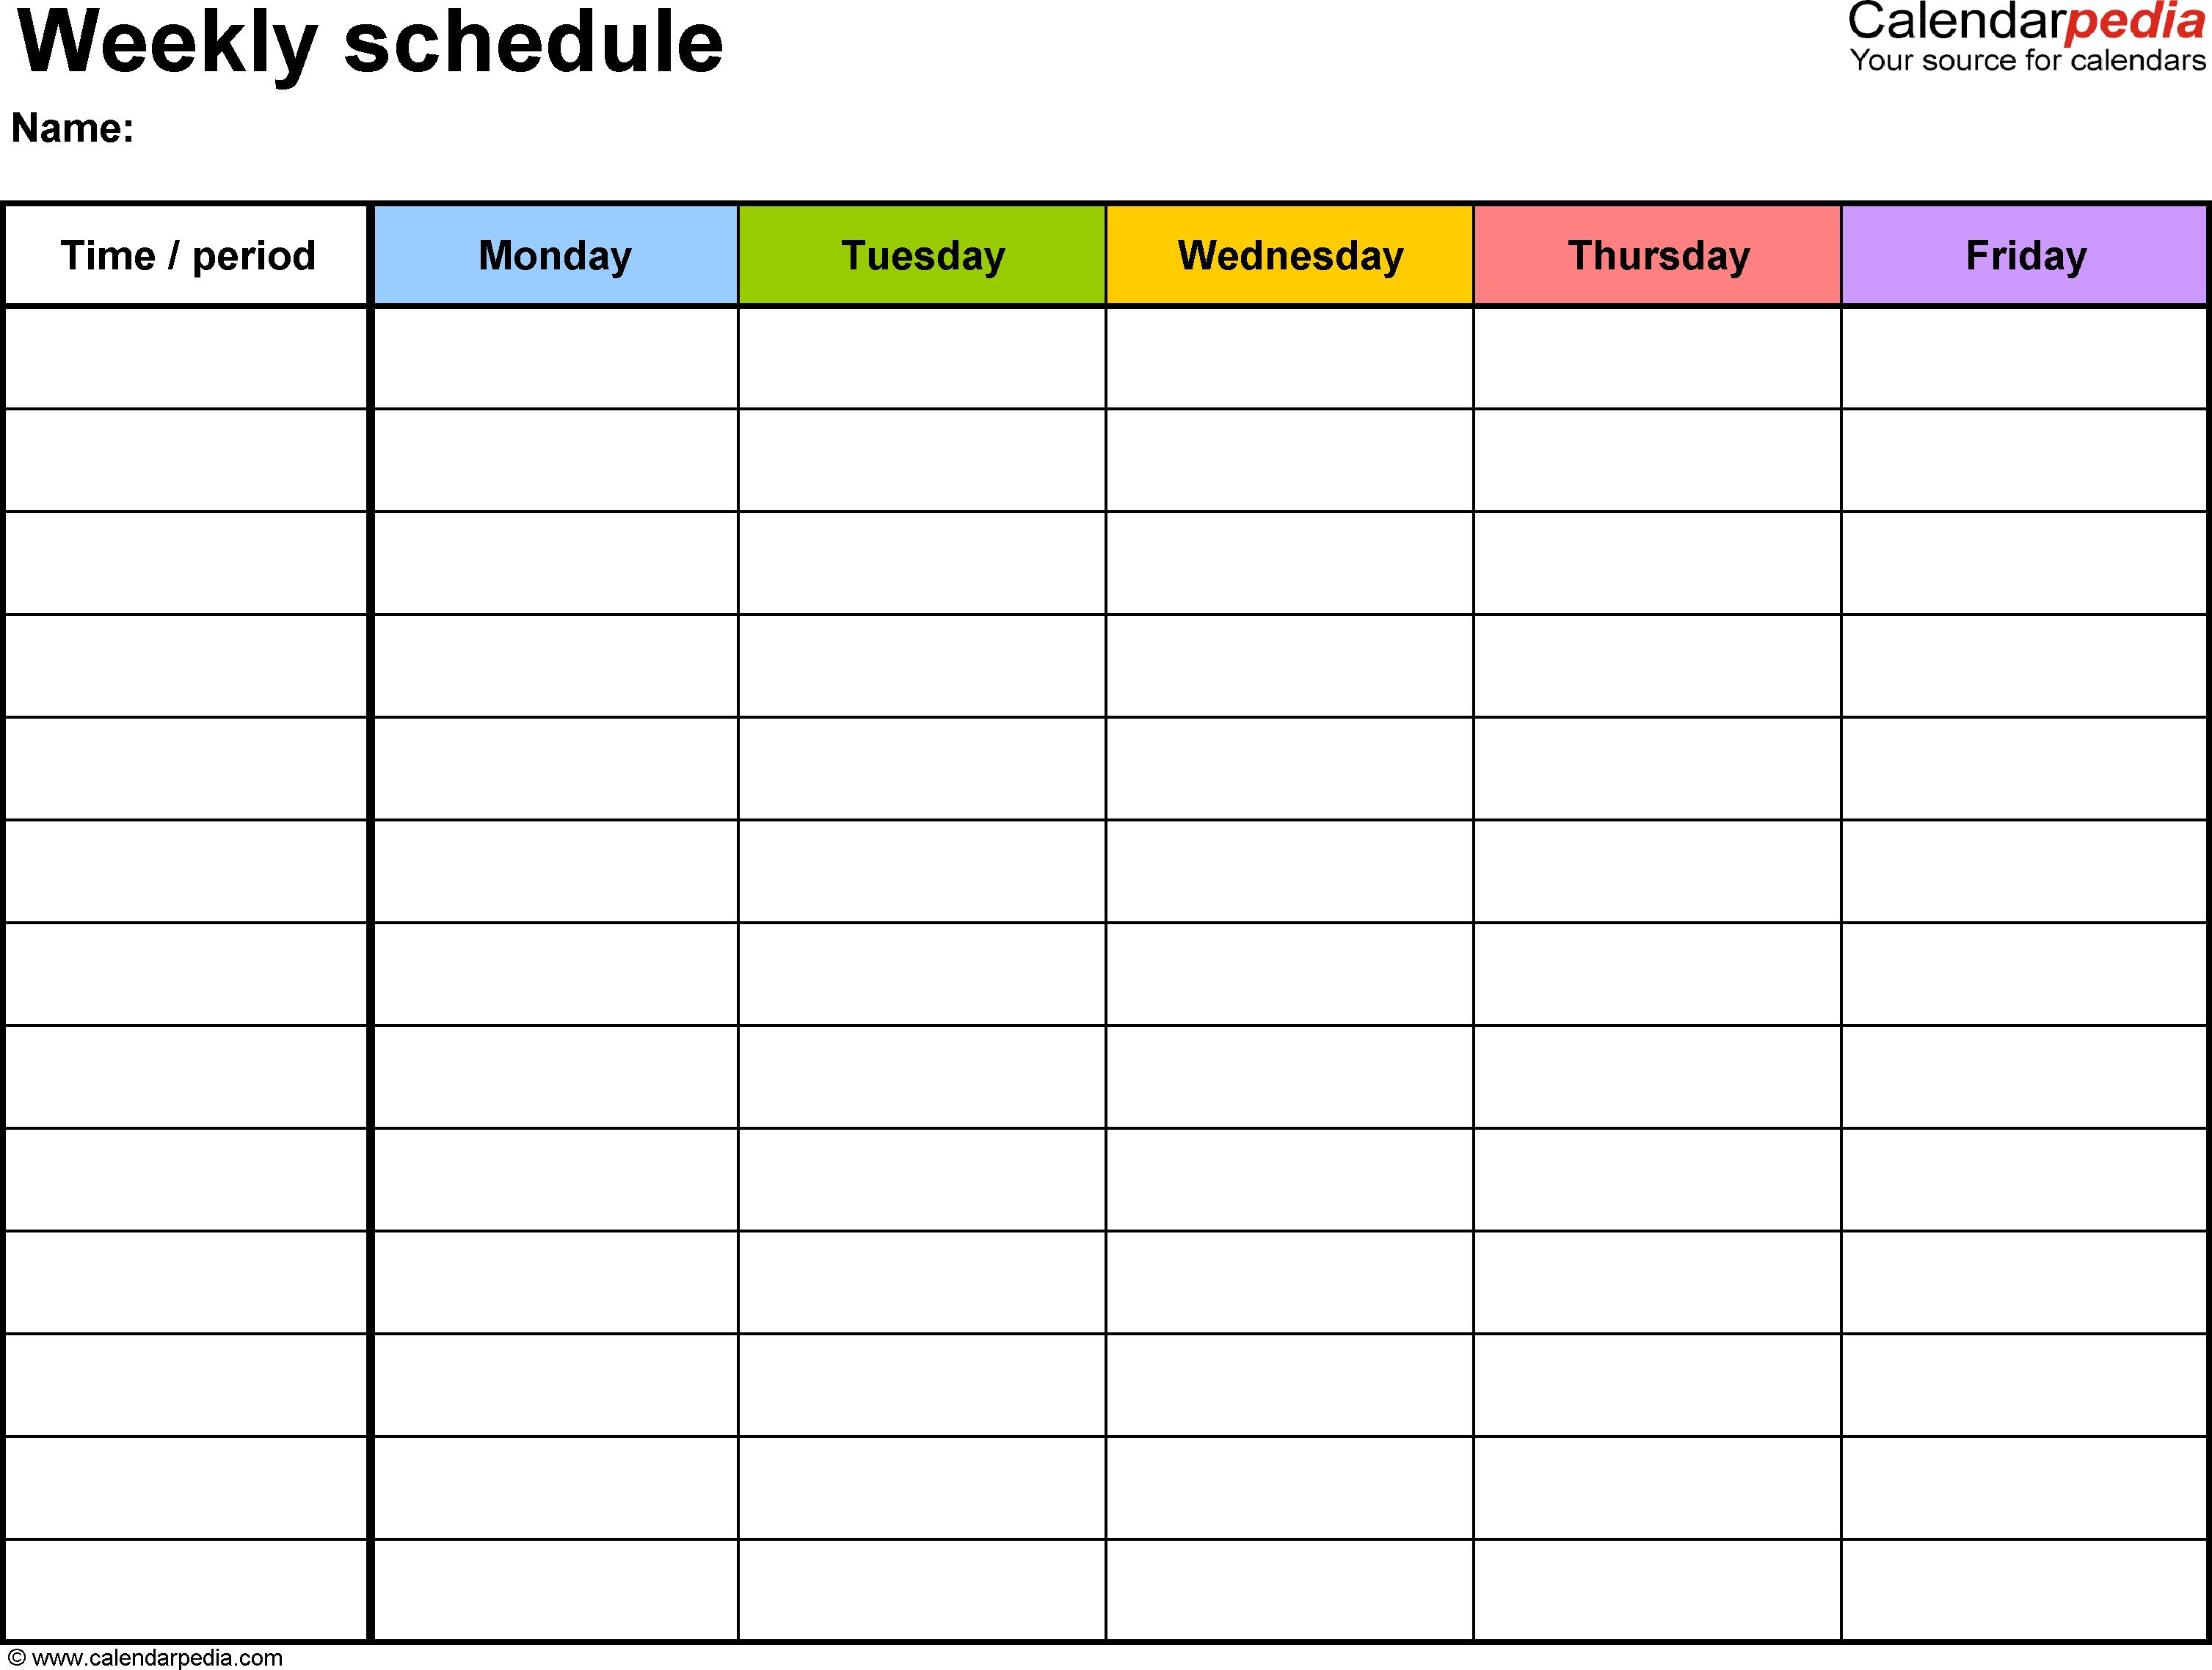 Free Weekly Schedule Templates For Word - 18 Templates pertaining to 5 Day Calendar Printable Free